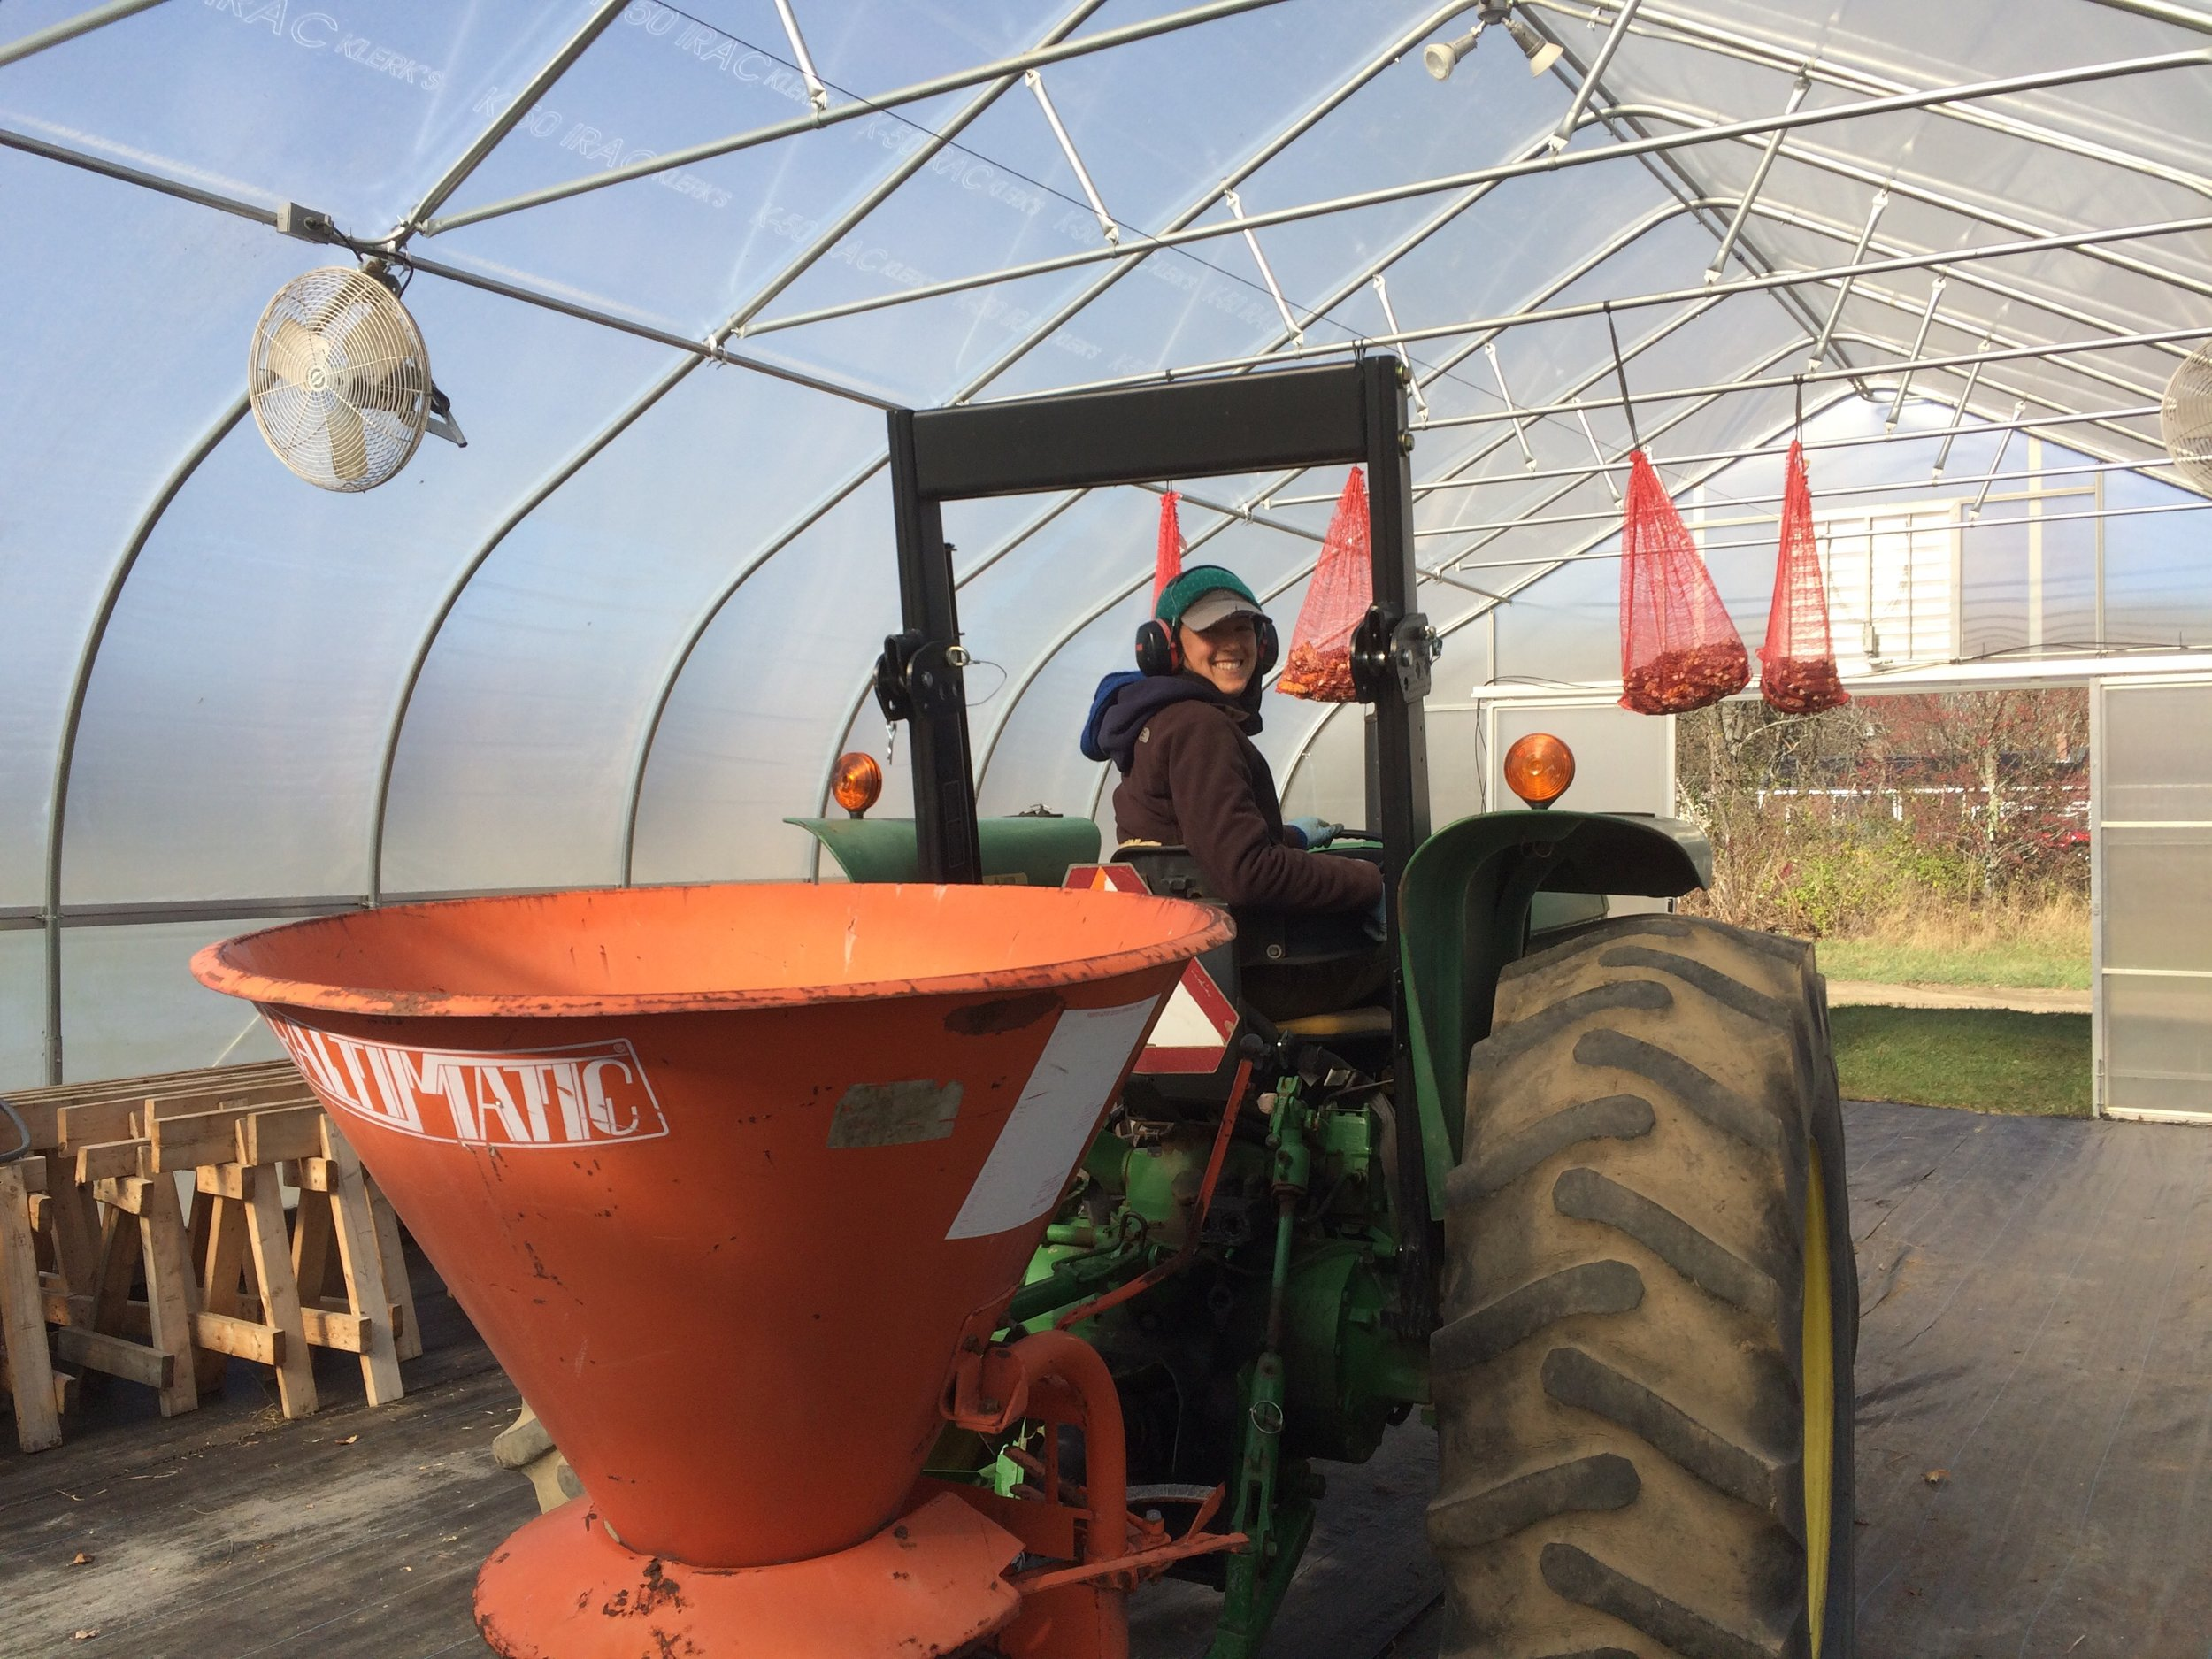 We've been spending our days cleaning up the fields, crop planning and tucking away much of our equipment in the greenhouse for winter. We'll be taking a break from those tasks this week to harvest and open the store for one last day!